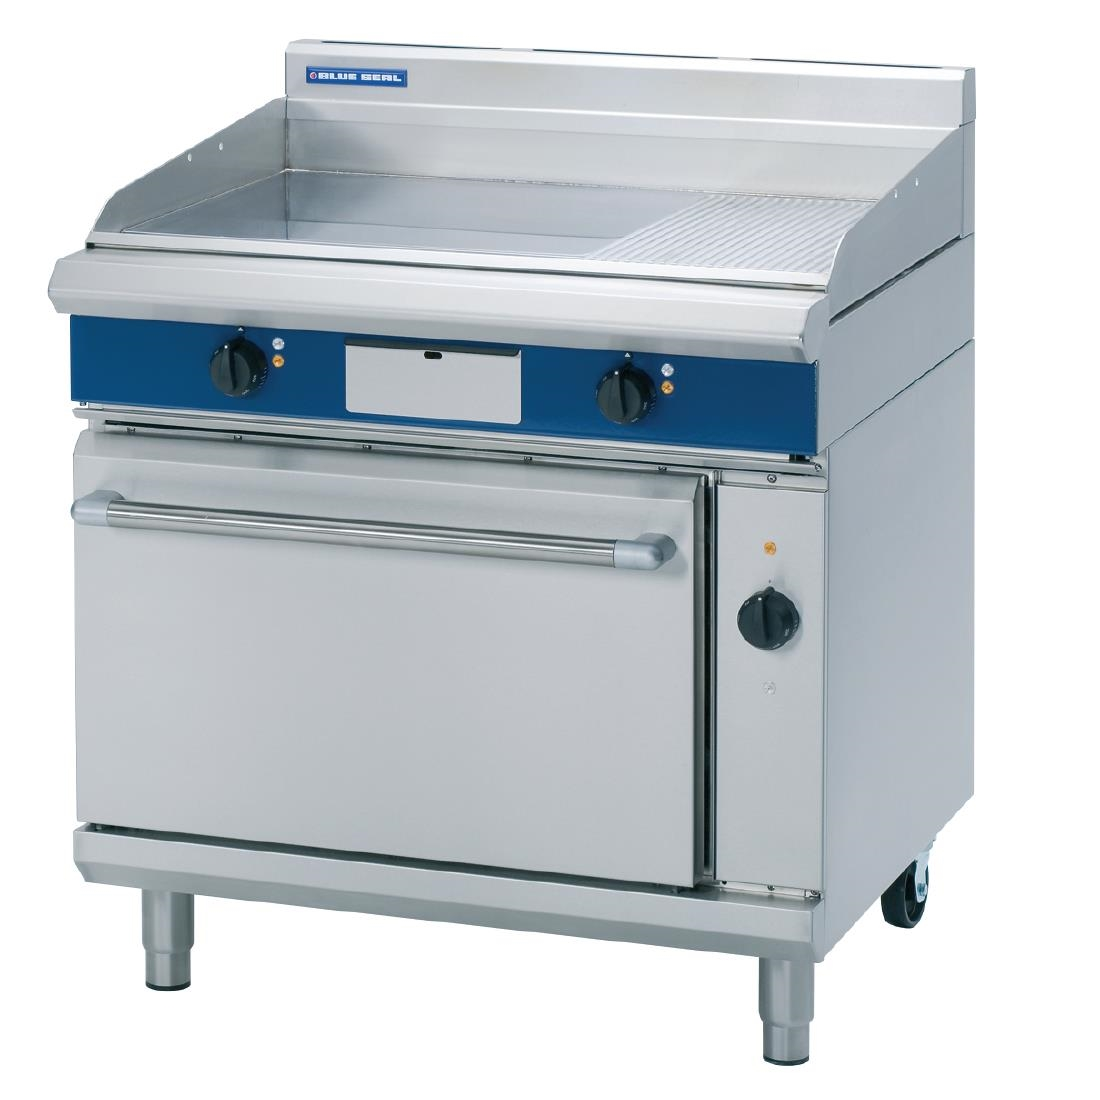 Image of Blue Seal Evolution Chrome 1/3 Ribbed Griddle Convection Oven Electric 900mm EPE56